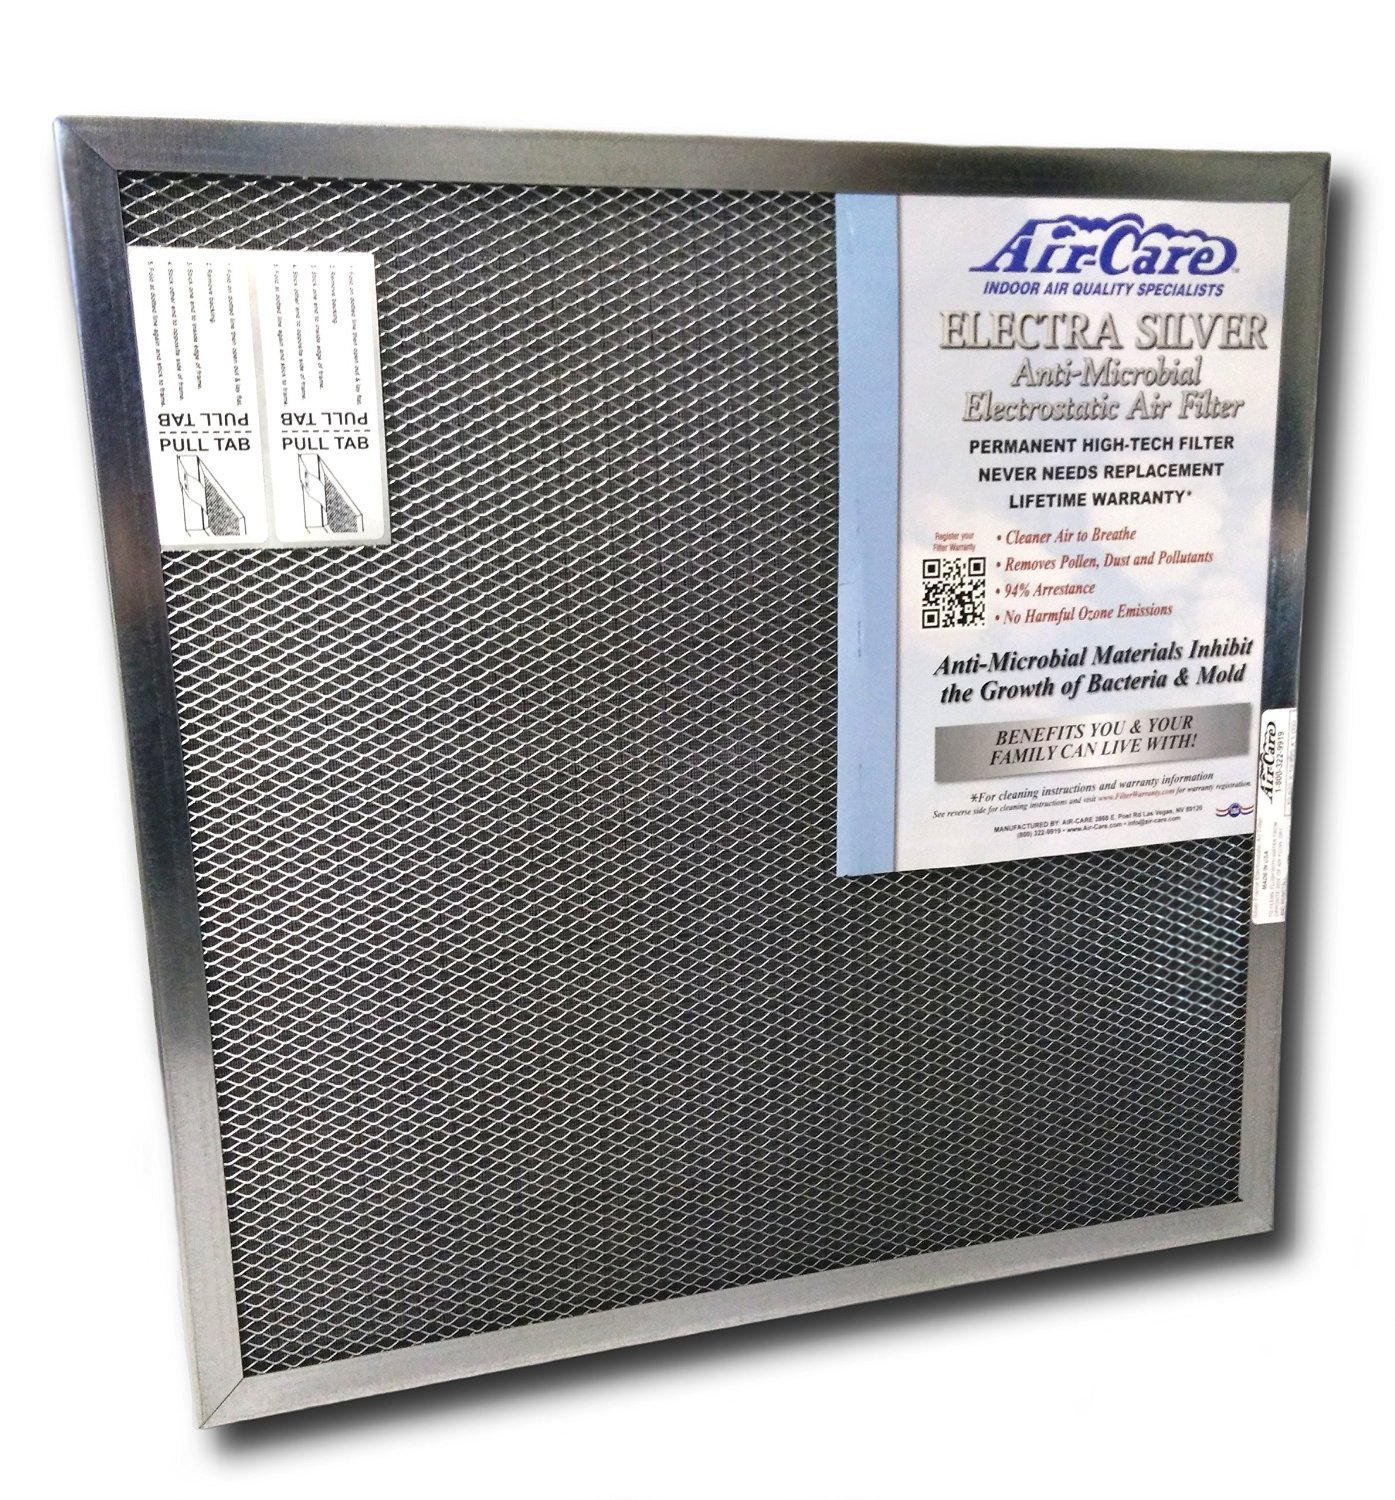 Best furnace air filters for allergies - Electrostatic Washable Permanent A C Furnace Air Filter 16 X 25 X 1 Inch Replacement Furnace Filters Amazon Com